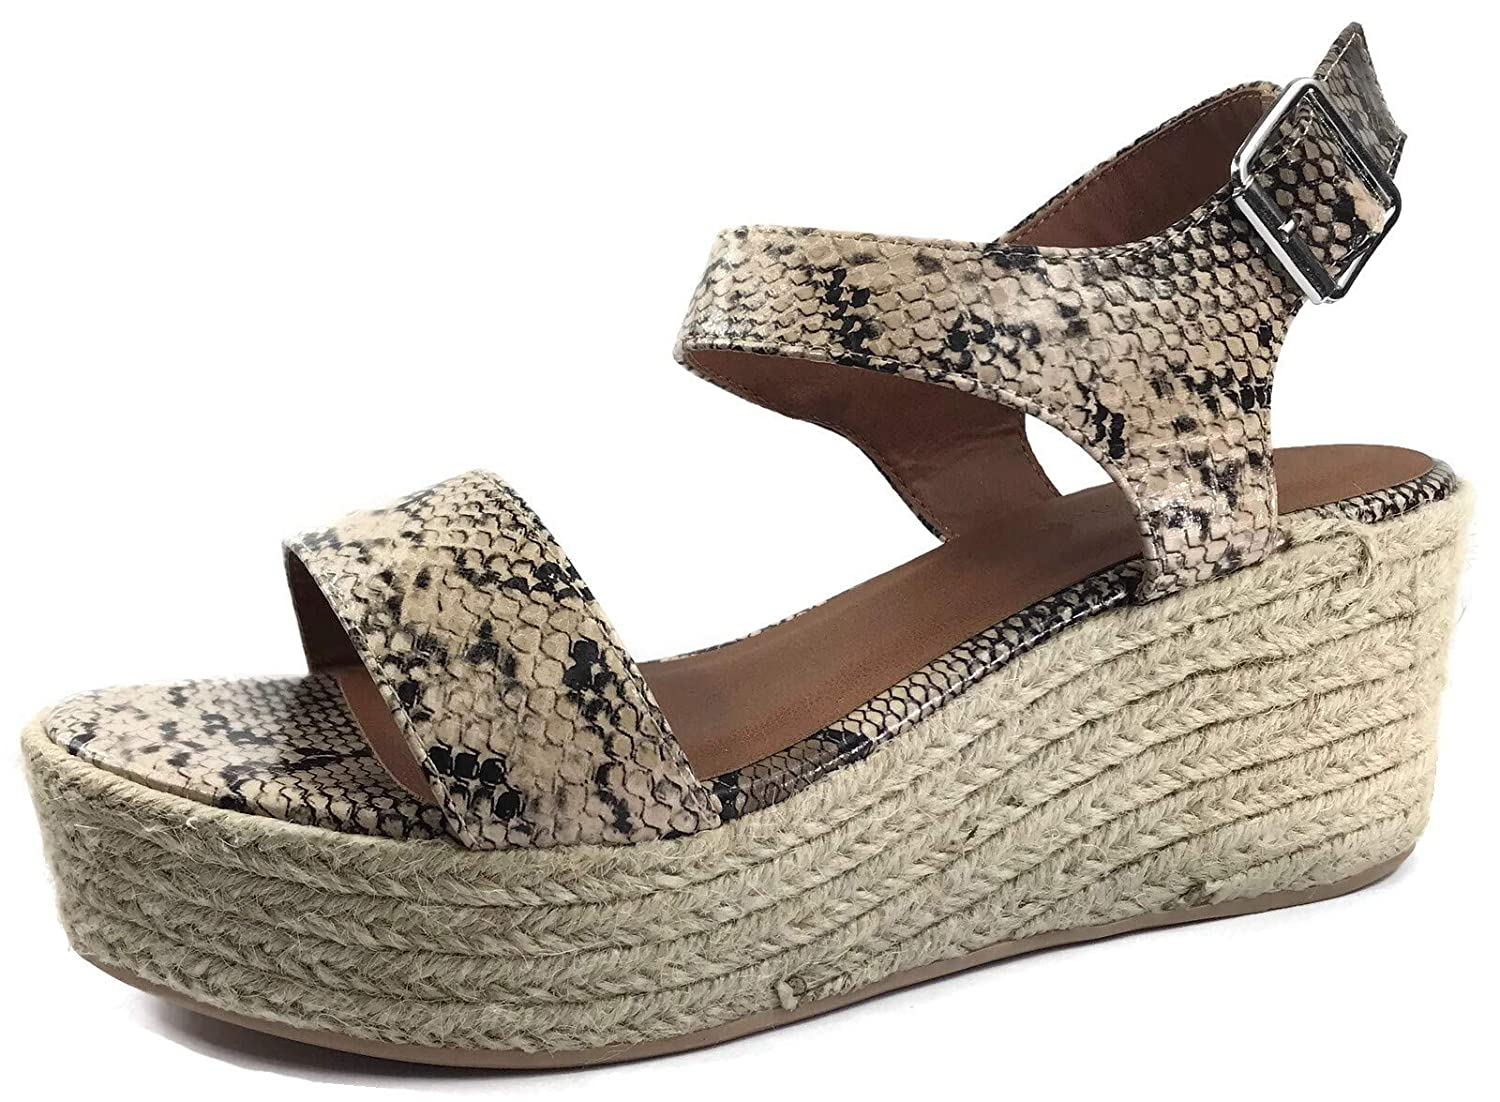 b10afe110c1 City Classified Womens Wedge Espadrilles Jute Rope Trim Ankle Strap Open  Toe Sandals